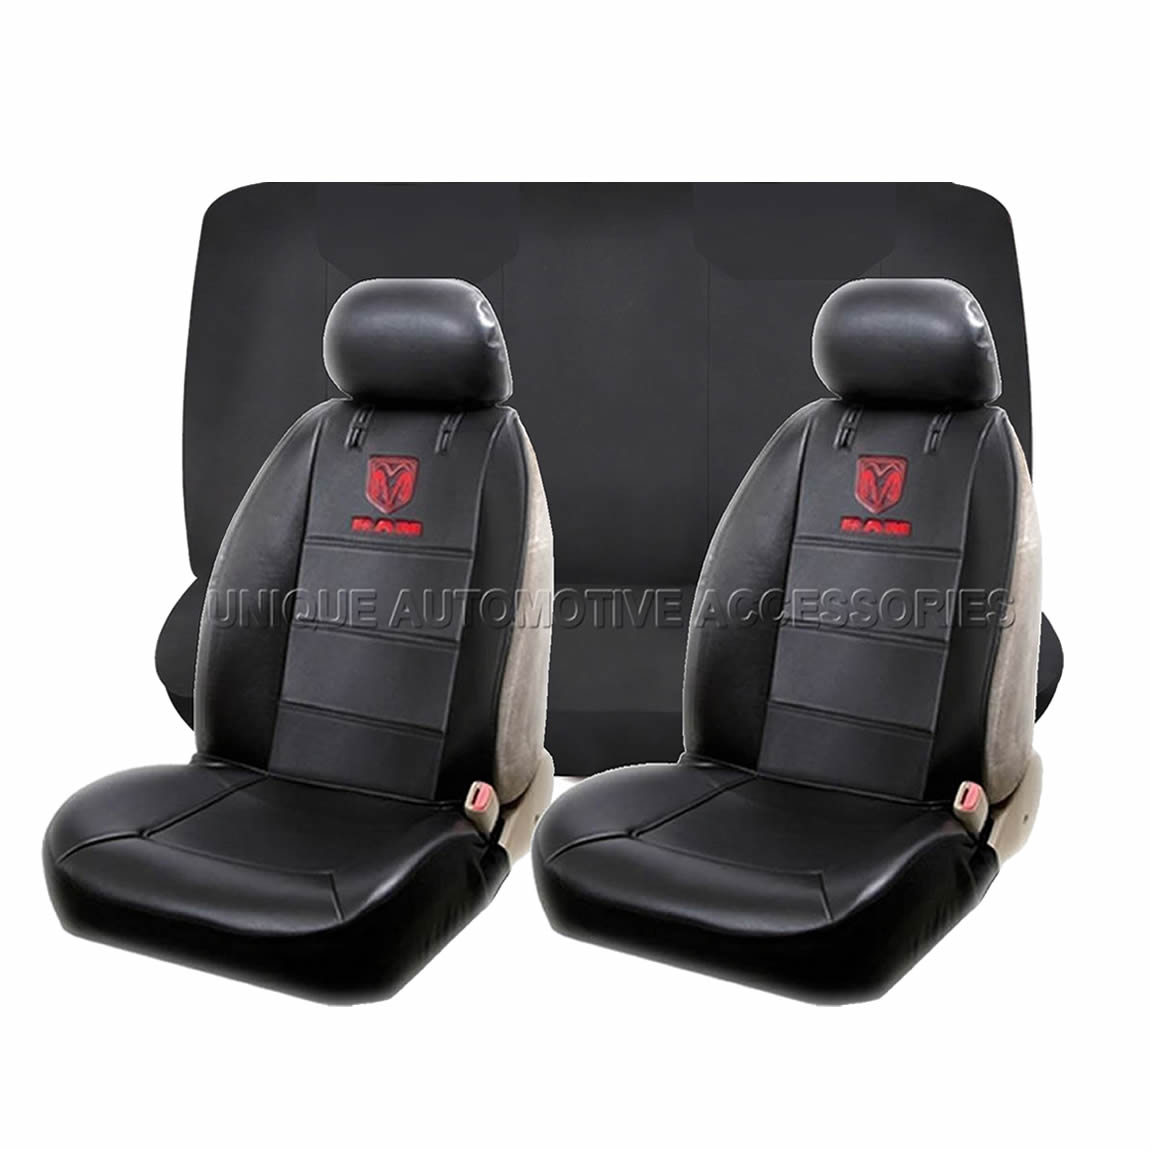 11pc Dodge Ram Elite Black Seat Covers Factory Rubber Mats